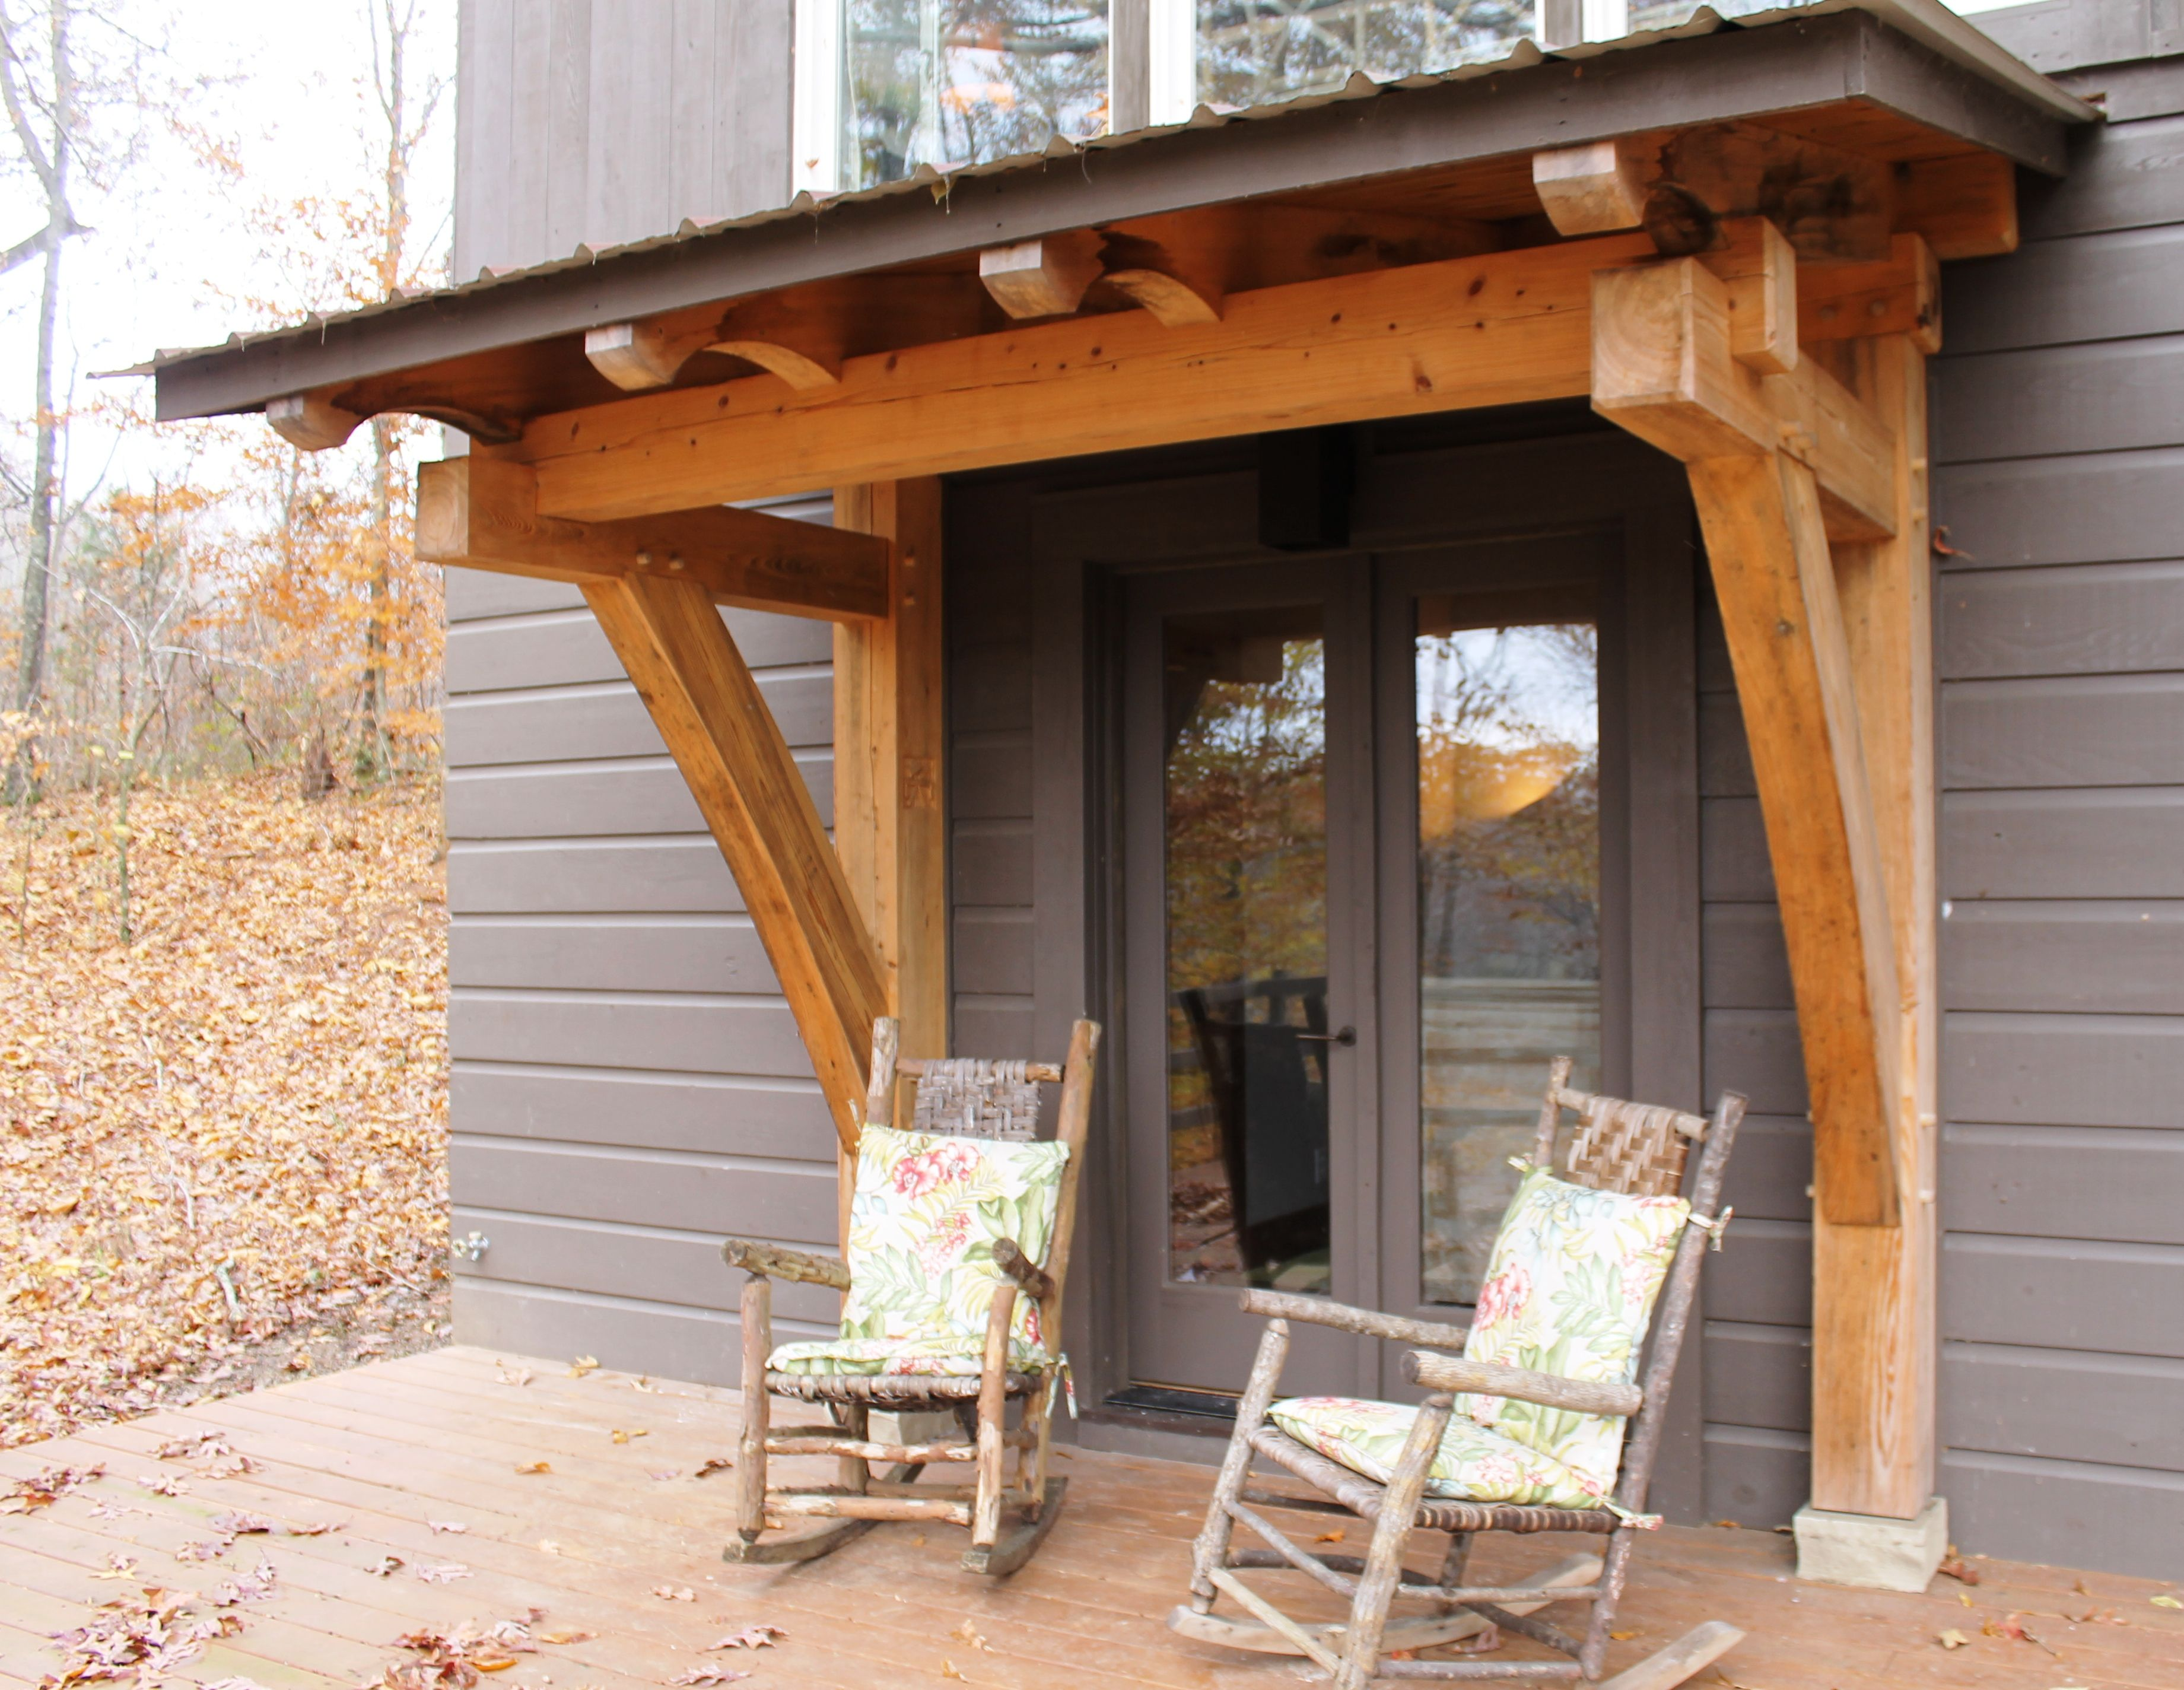 Timber frame porch heavy timbered porch homestead for Timber frame porch designs